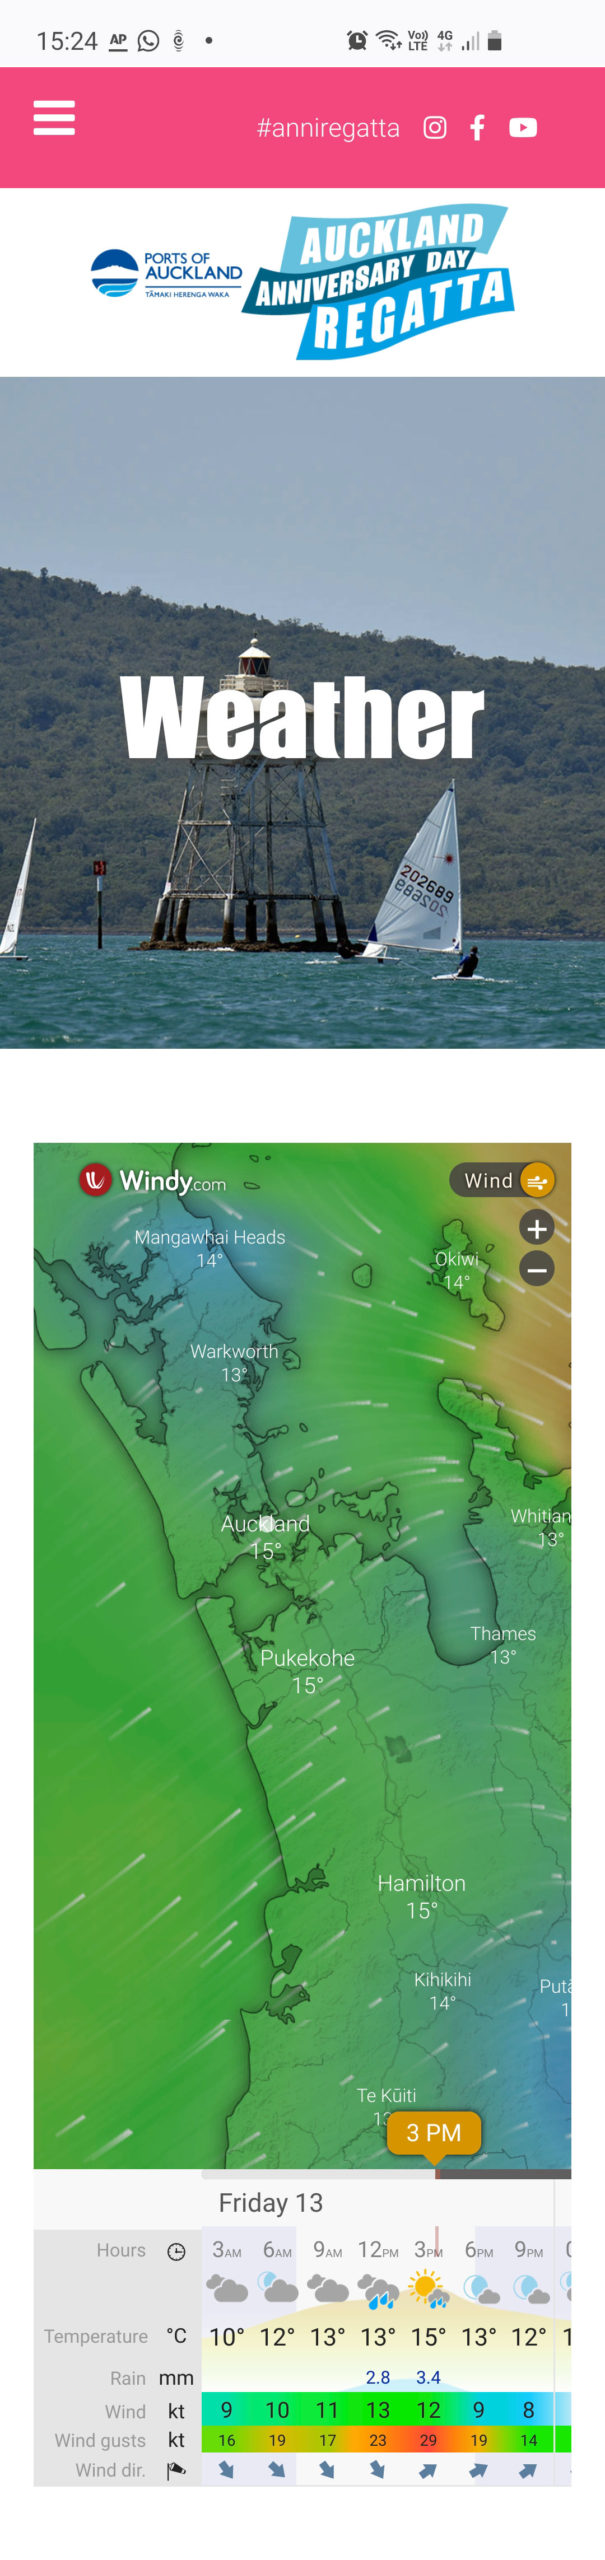 Screenshot of mobile version with weather forecast